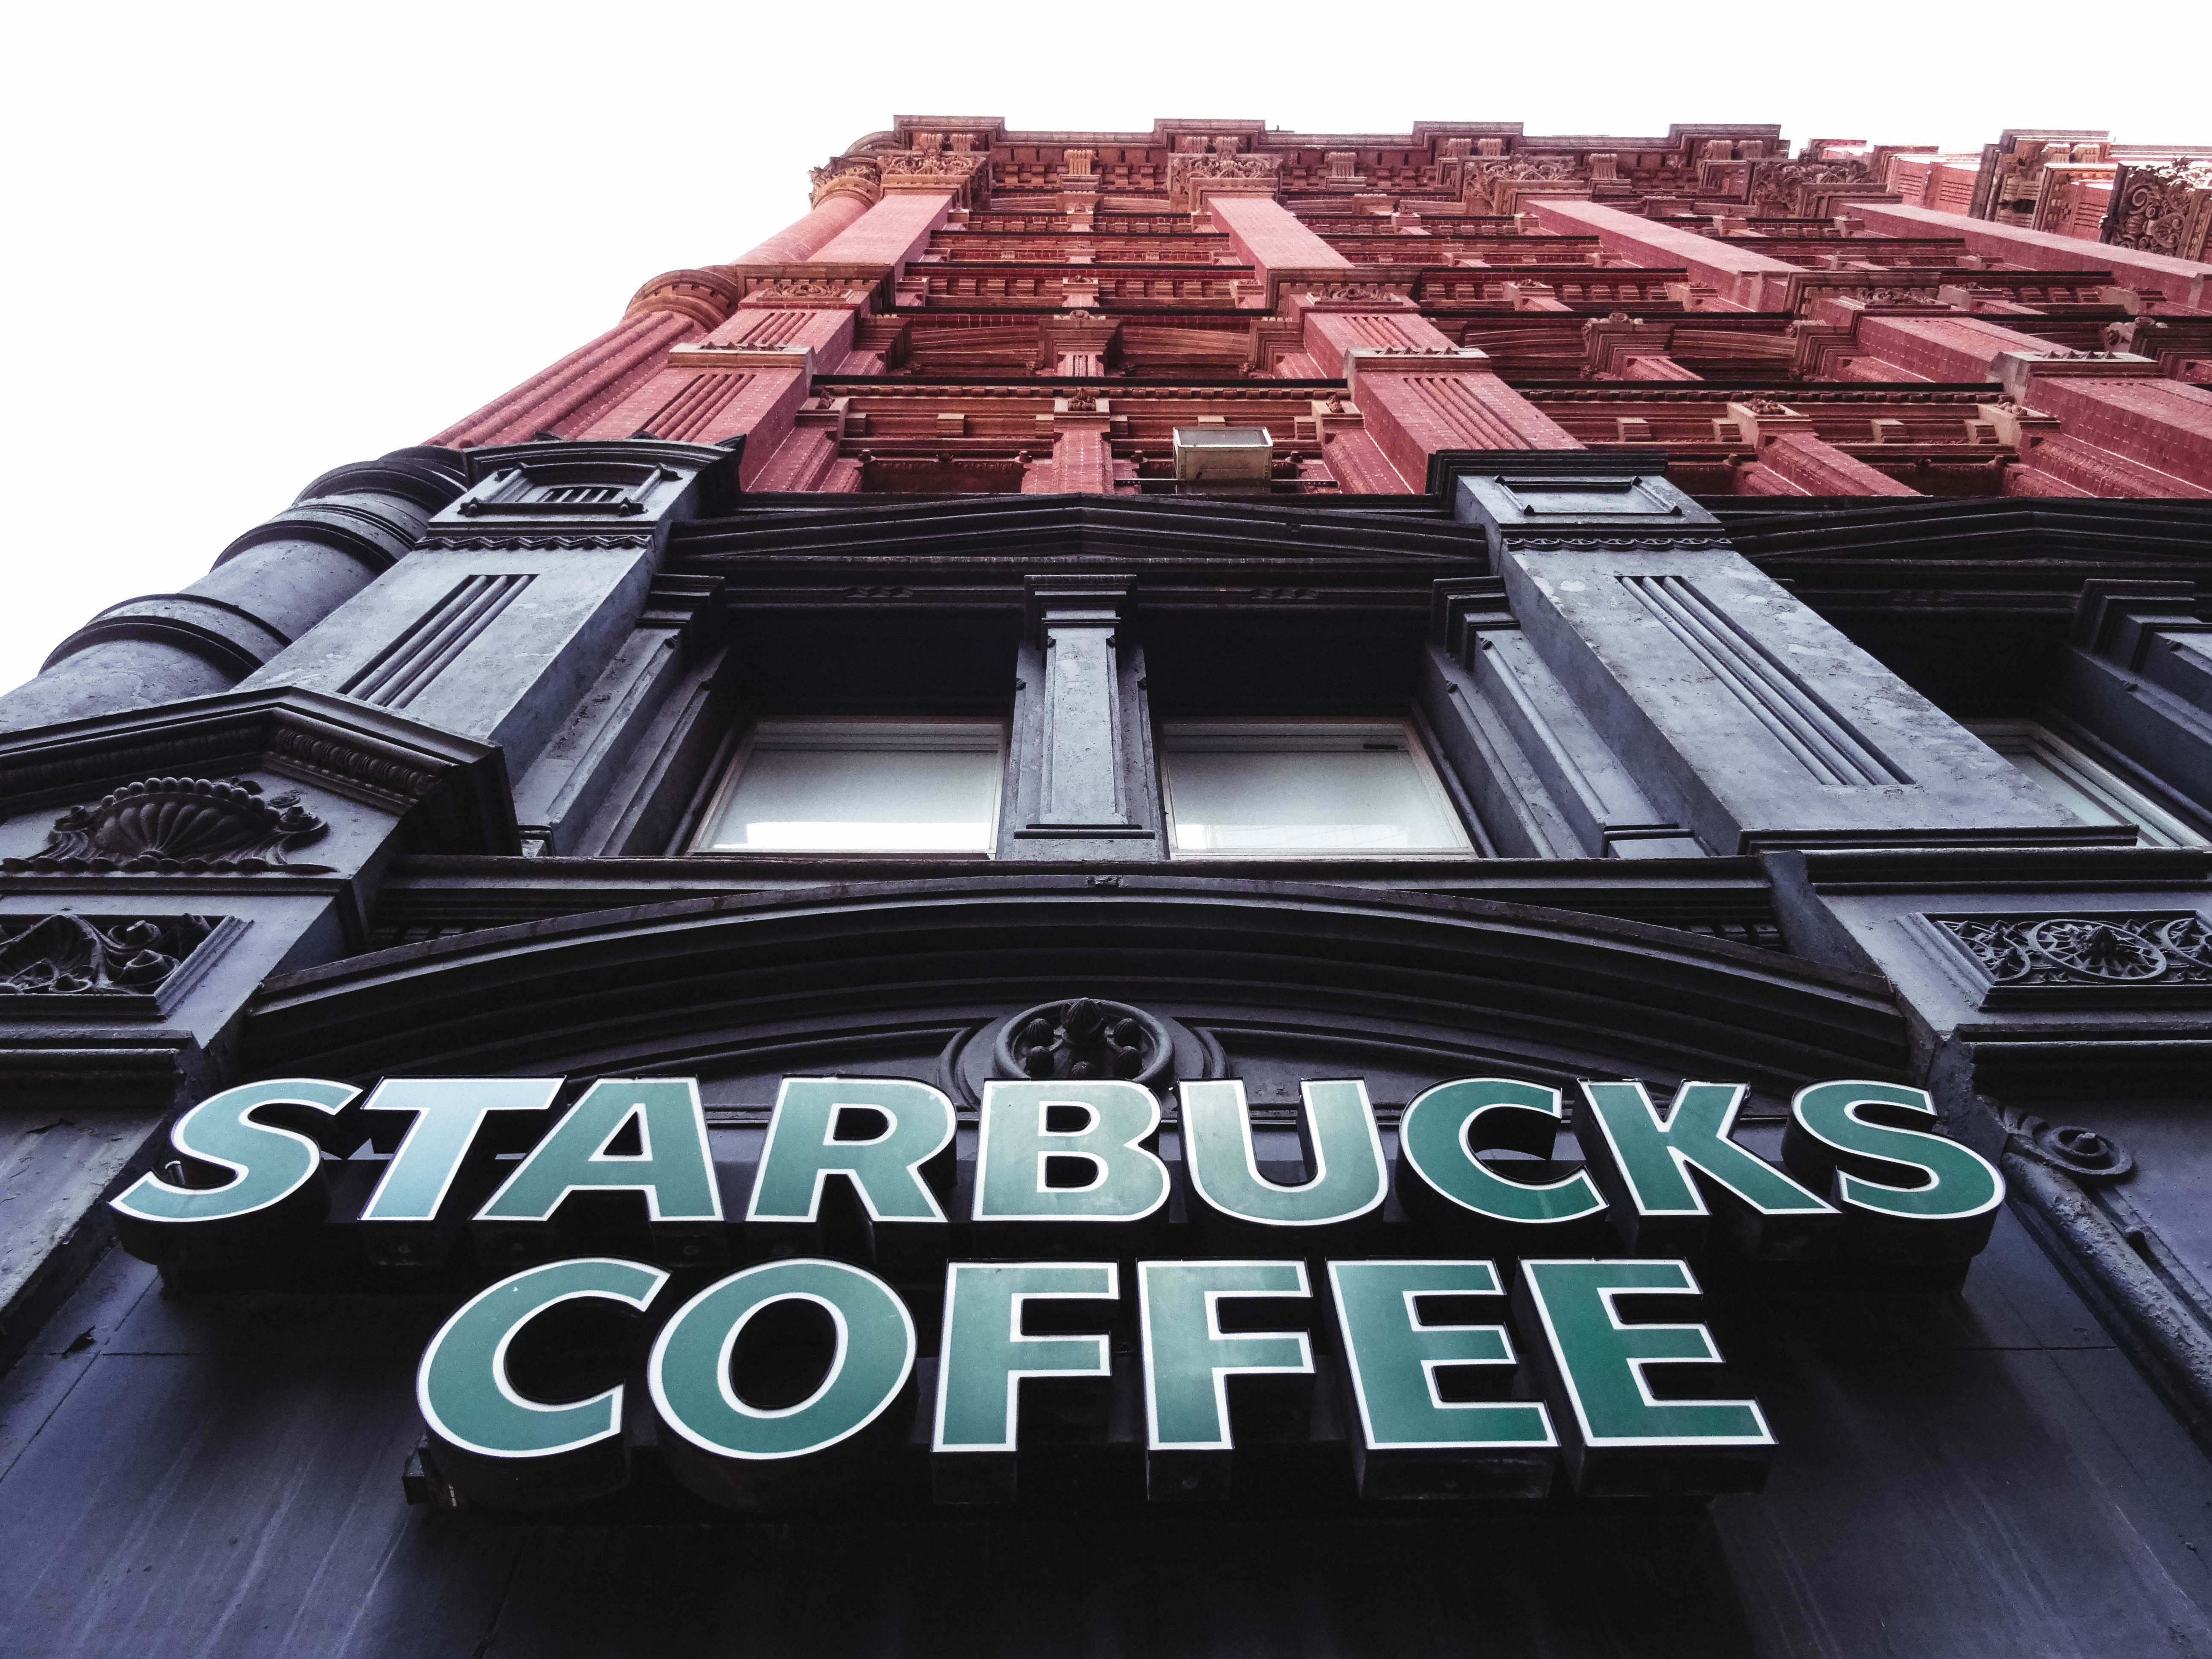 Starbucks Is Officially Working With Blockchain Technology